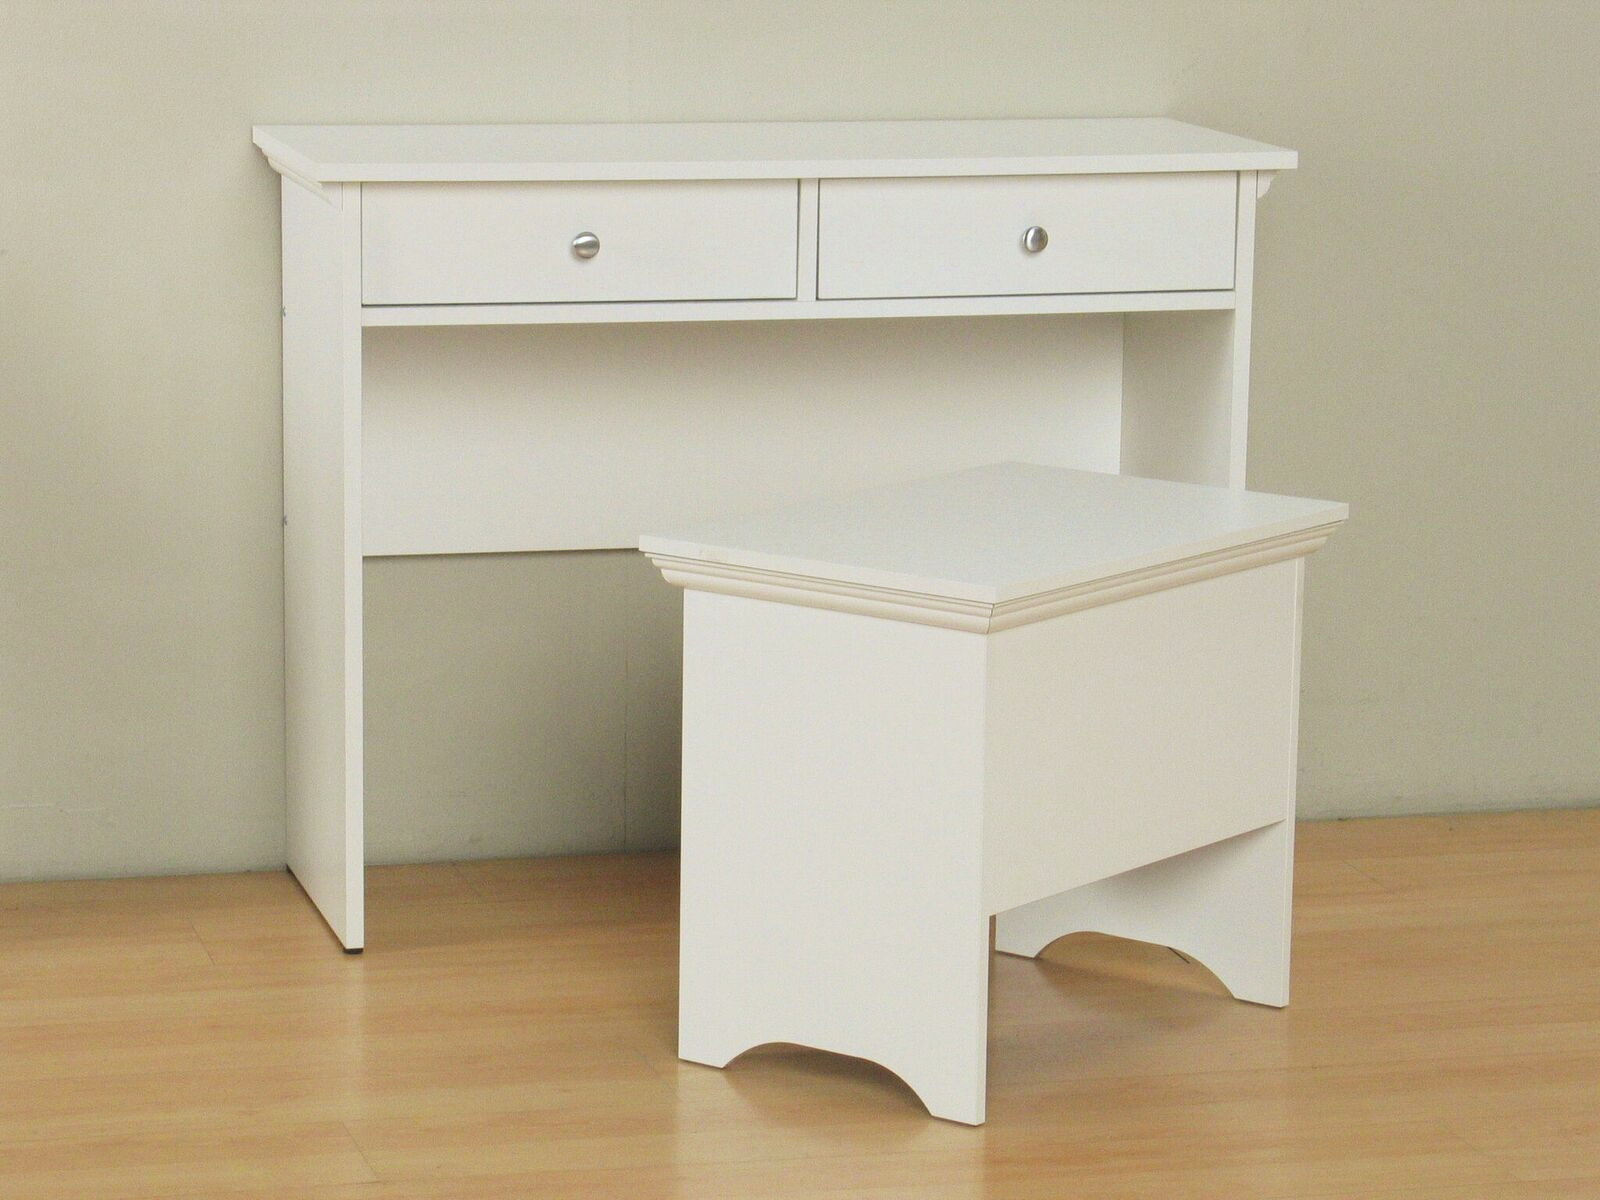 coiffeuse tabouret capri coiffeuse bureau chaise table de bureau table blanc ebay. Black Bedroom Furniture Sets. Home Design Ideas